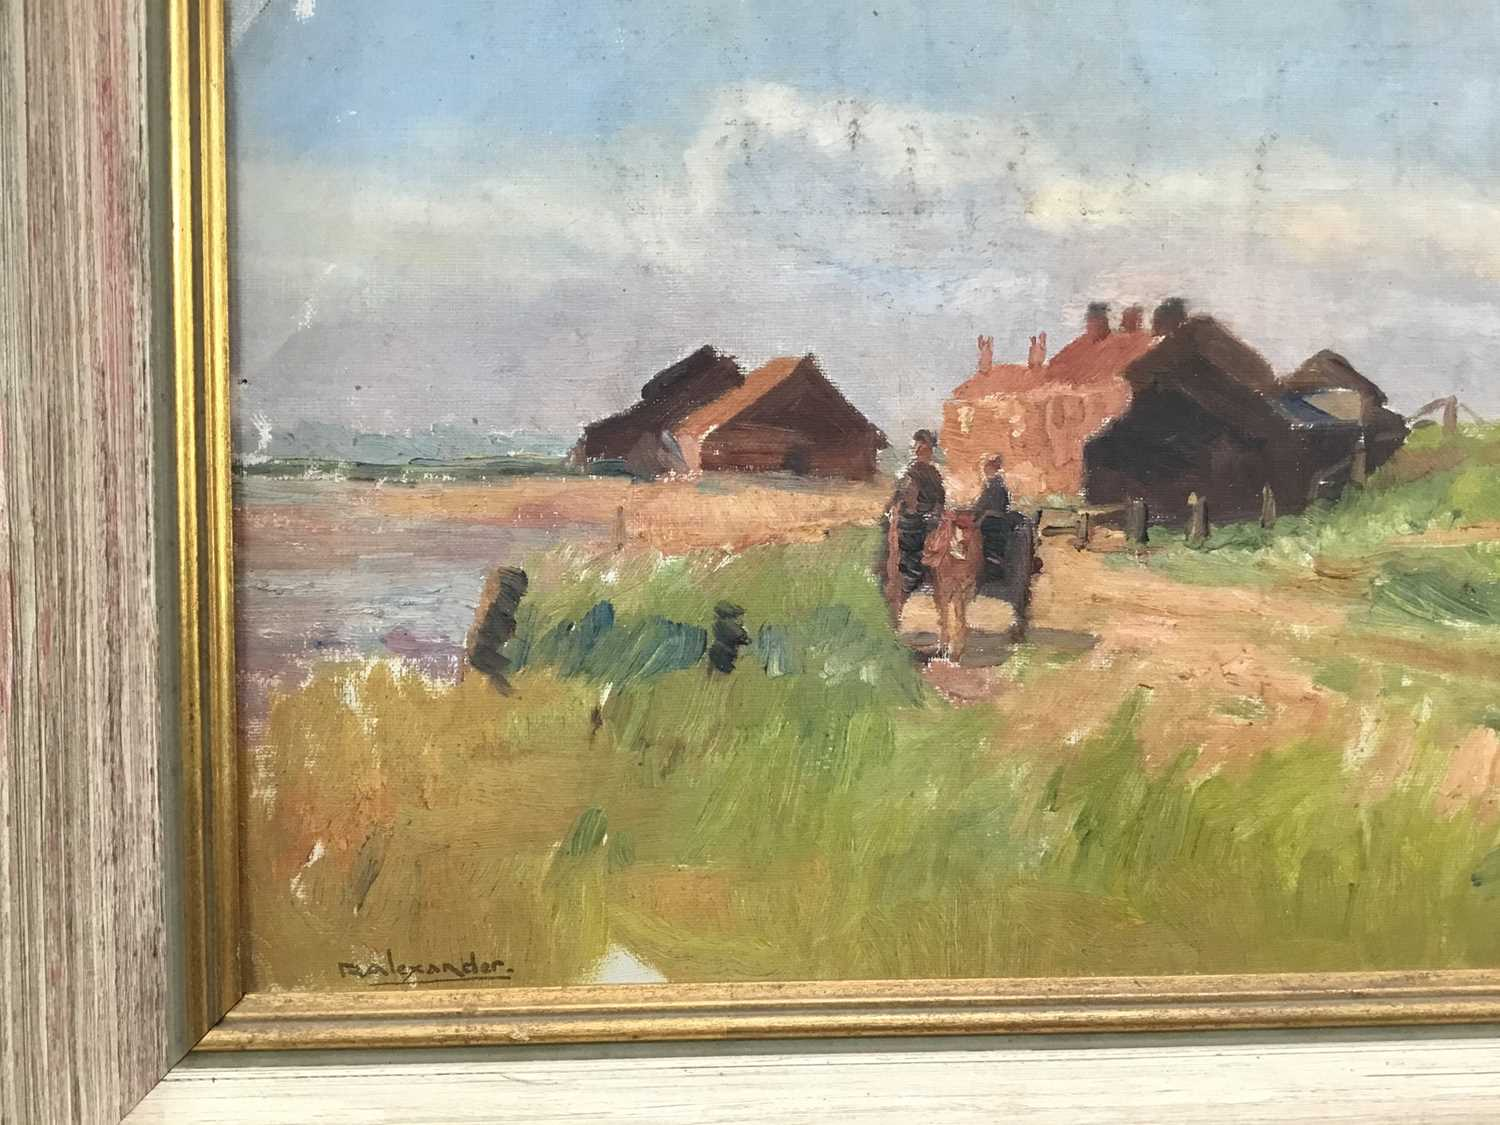 Robert G. D. Alexander (1875-1945) oil on canvas laid on board - Kirby Quay, Essex, with Carters Mil - Image 5 of 9